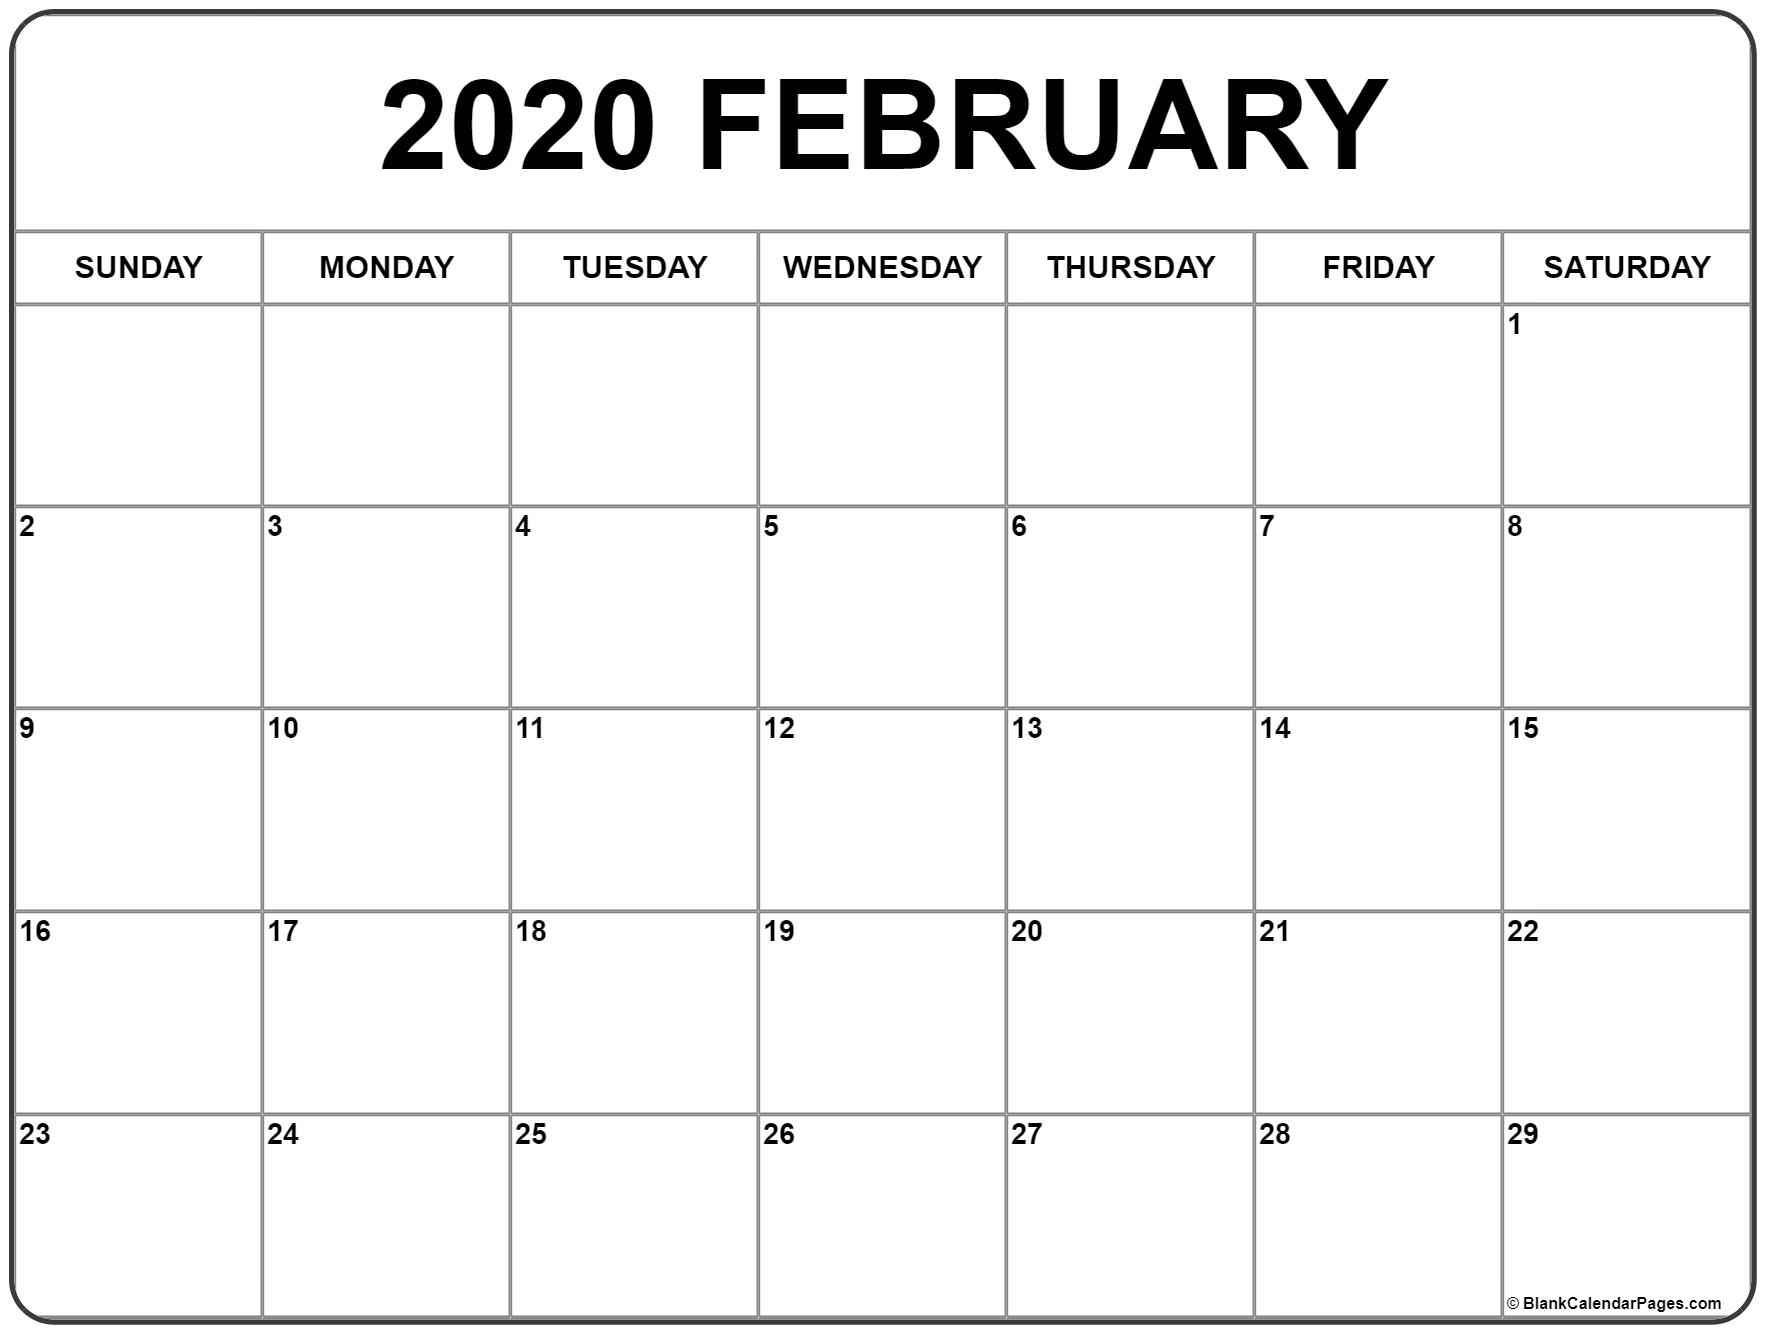 February 2020 Calendar | Free Printable Monthly Calendars inside February 2020 Calender That I Can Fill In